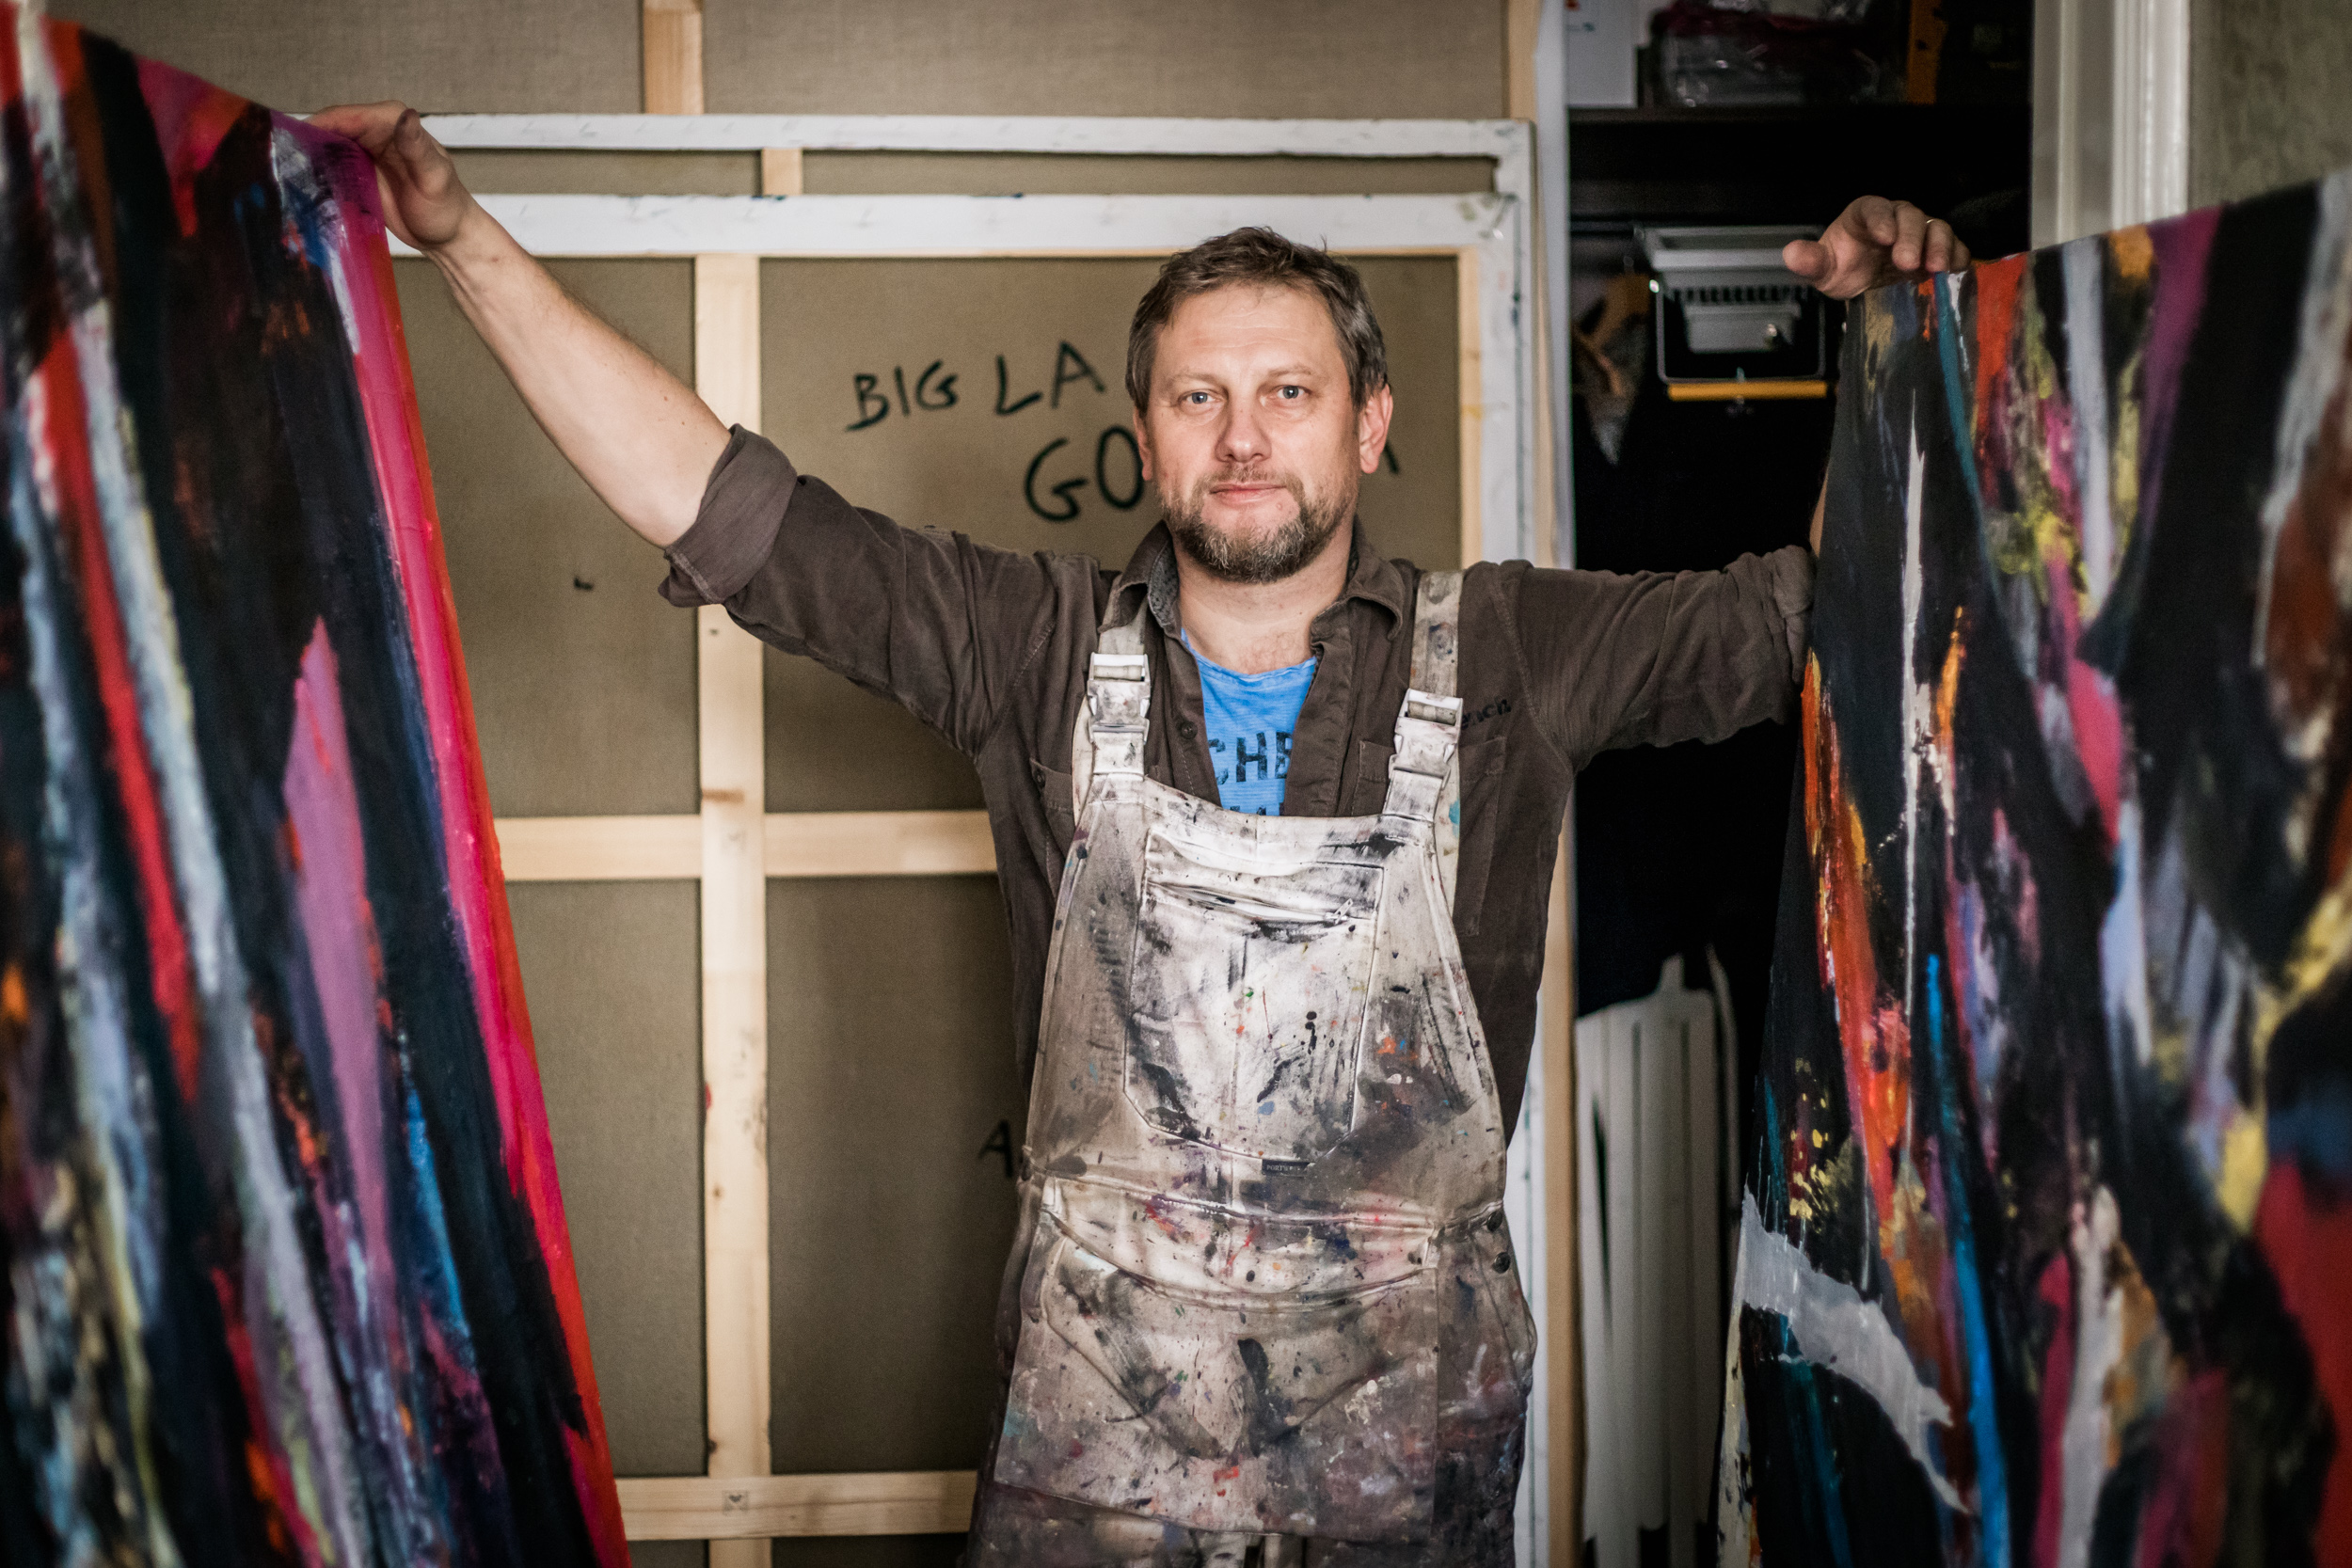 Andrzej Lichota in his studio in Cracow, March 2019. Photo by Bartosz Cygan / for Rzeczy Piękne